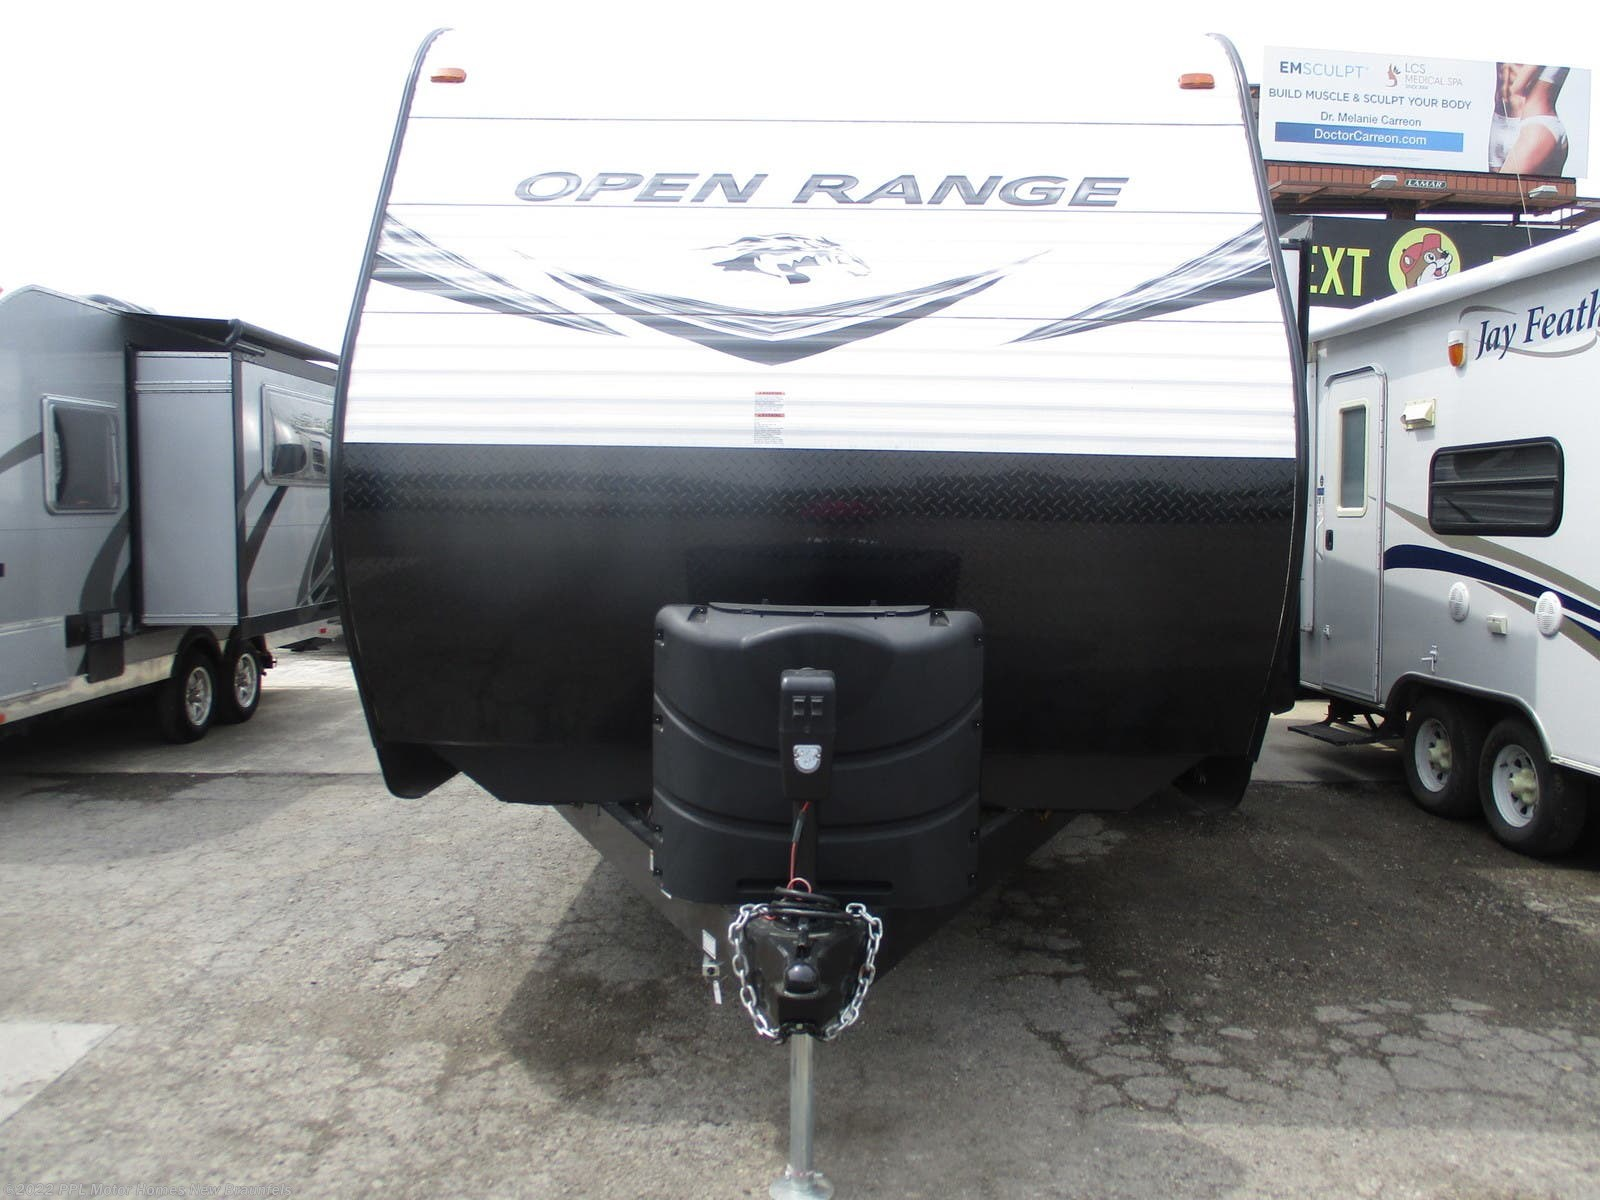 2019 Open Range RV 2802BH for Sale in New Braunfels, TX 78130 | T144NB